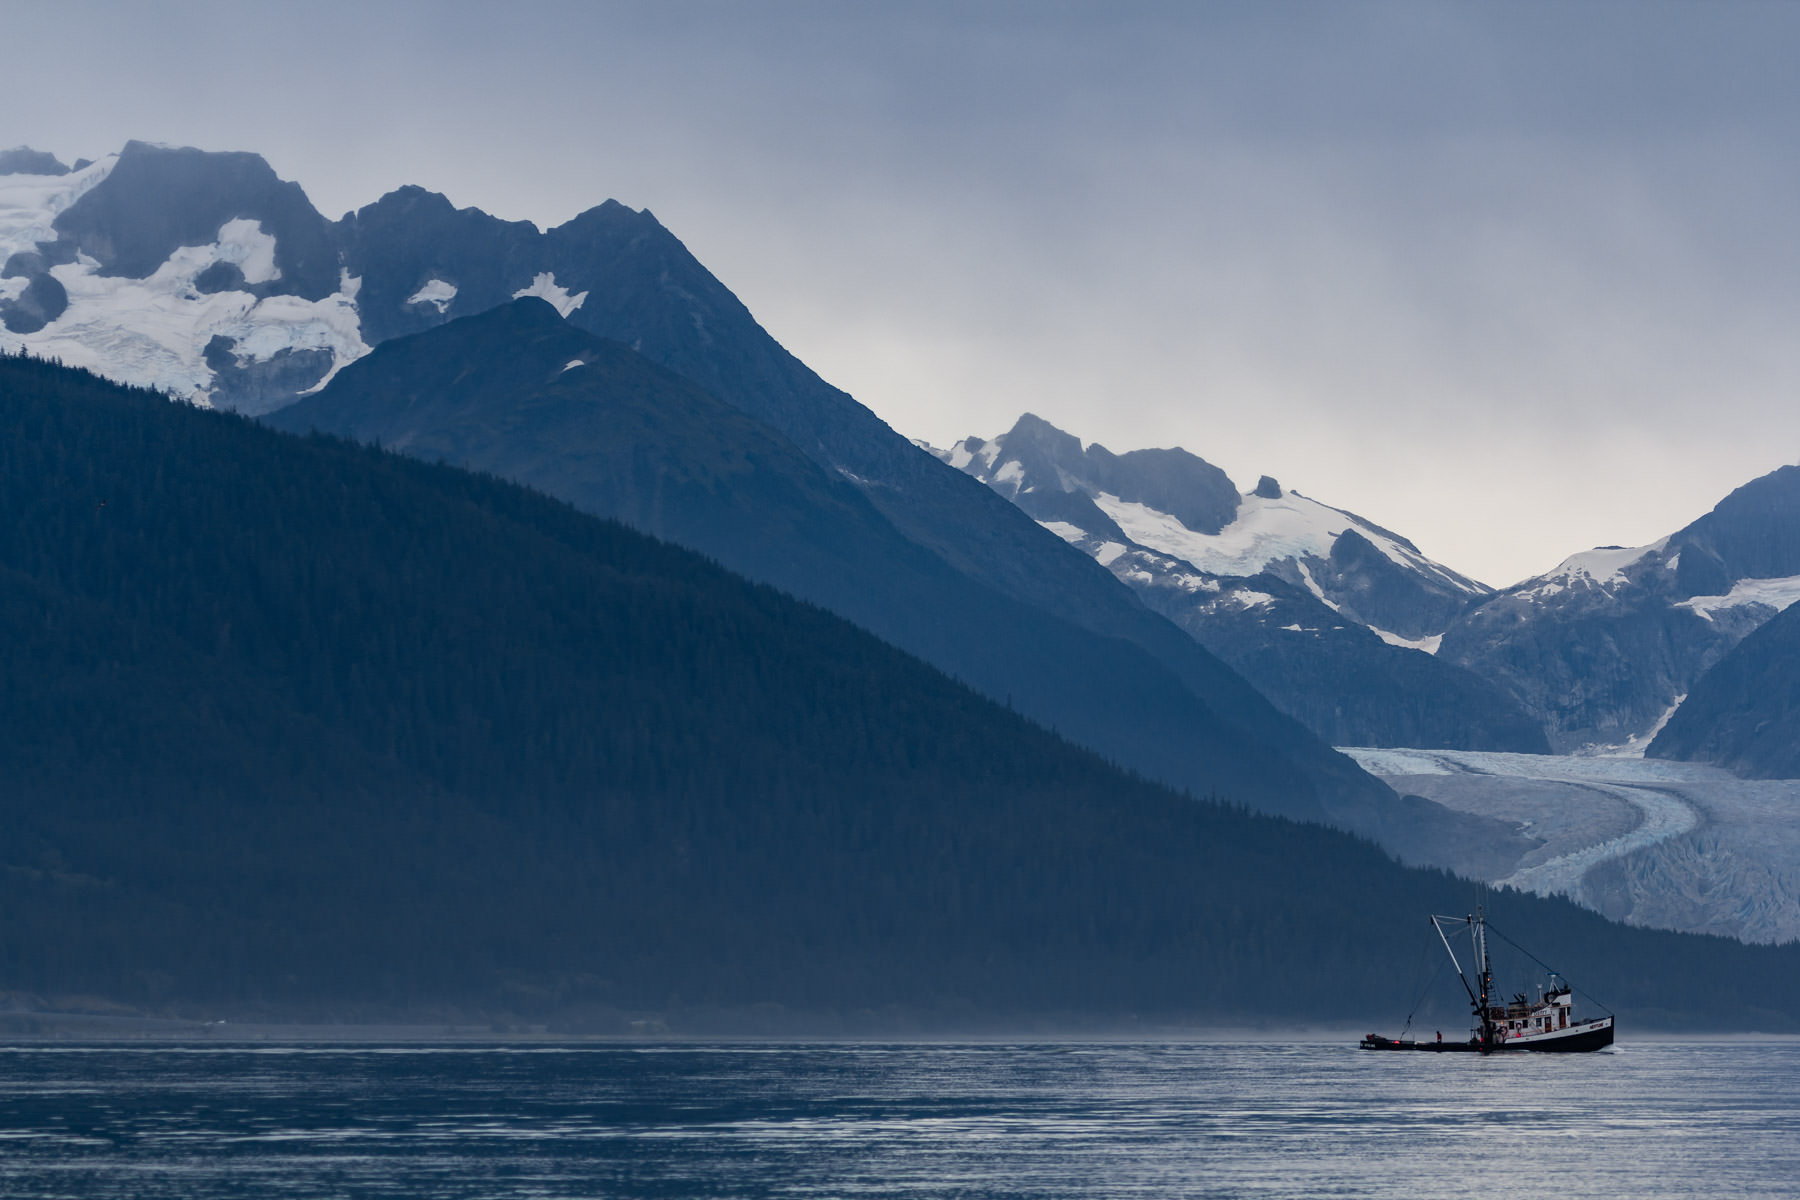 A fishing boat motors through a channel near Juneau, Alaska on a cold, overcast day.